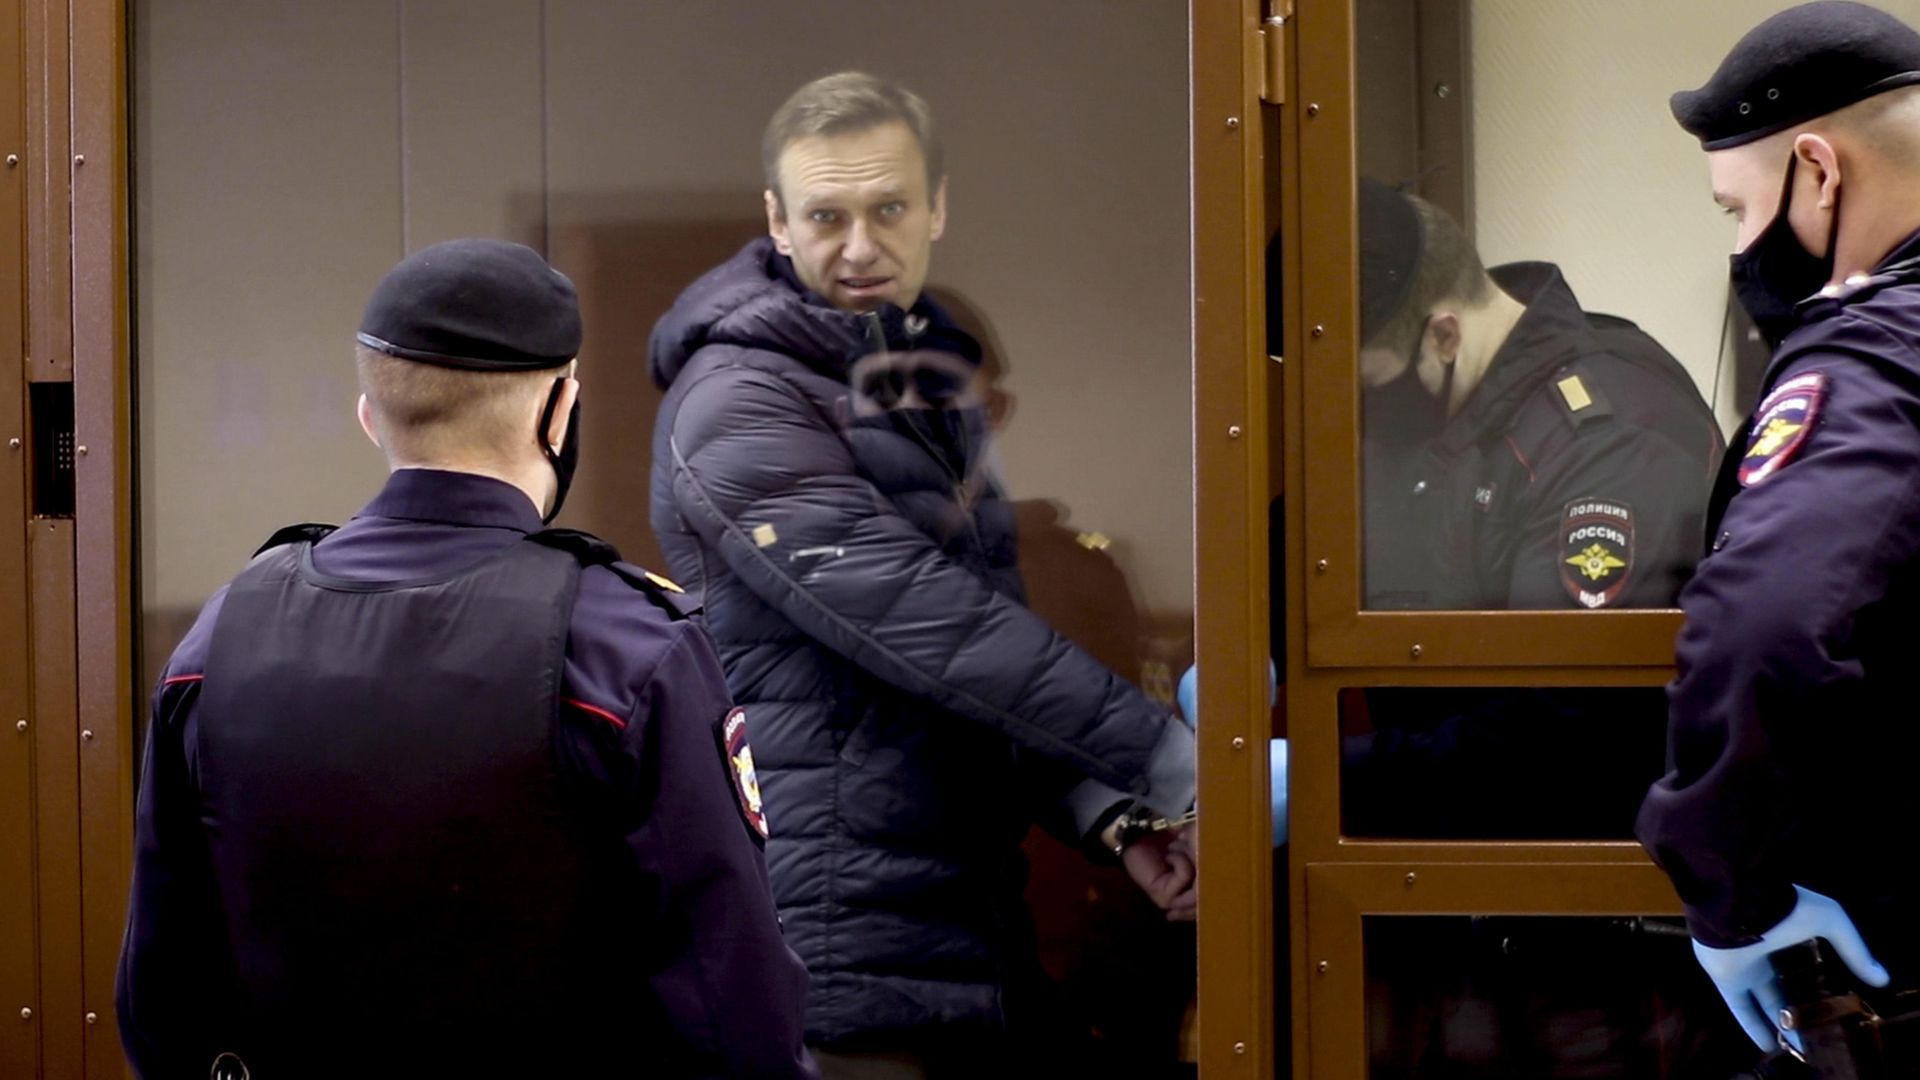 TRAPPED: Russian opposition Alexei Navalny appears in court in Moscow - Credit: Anadolu Agency via Getty Images